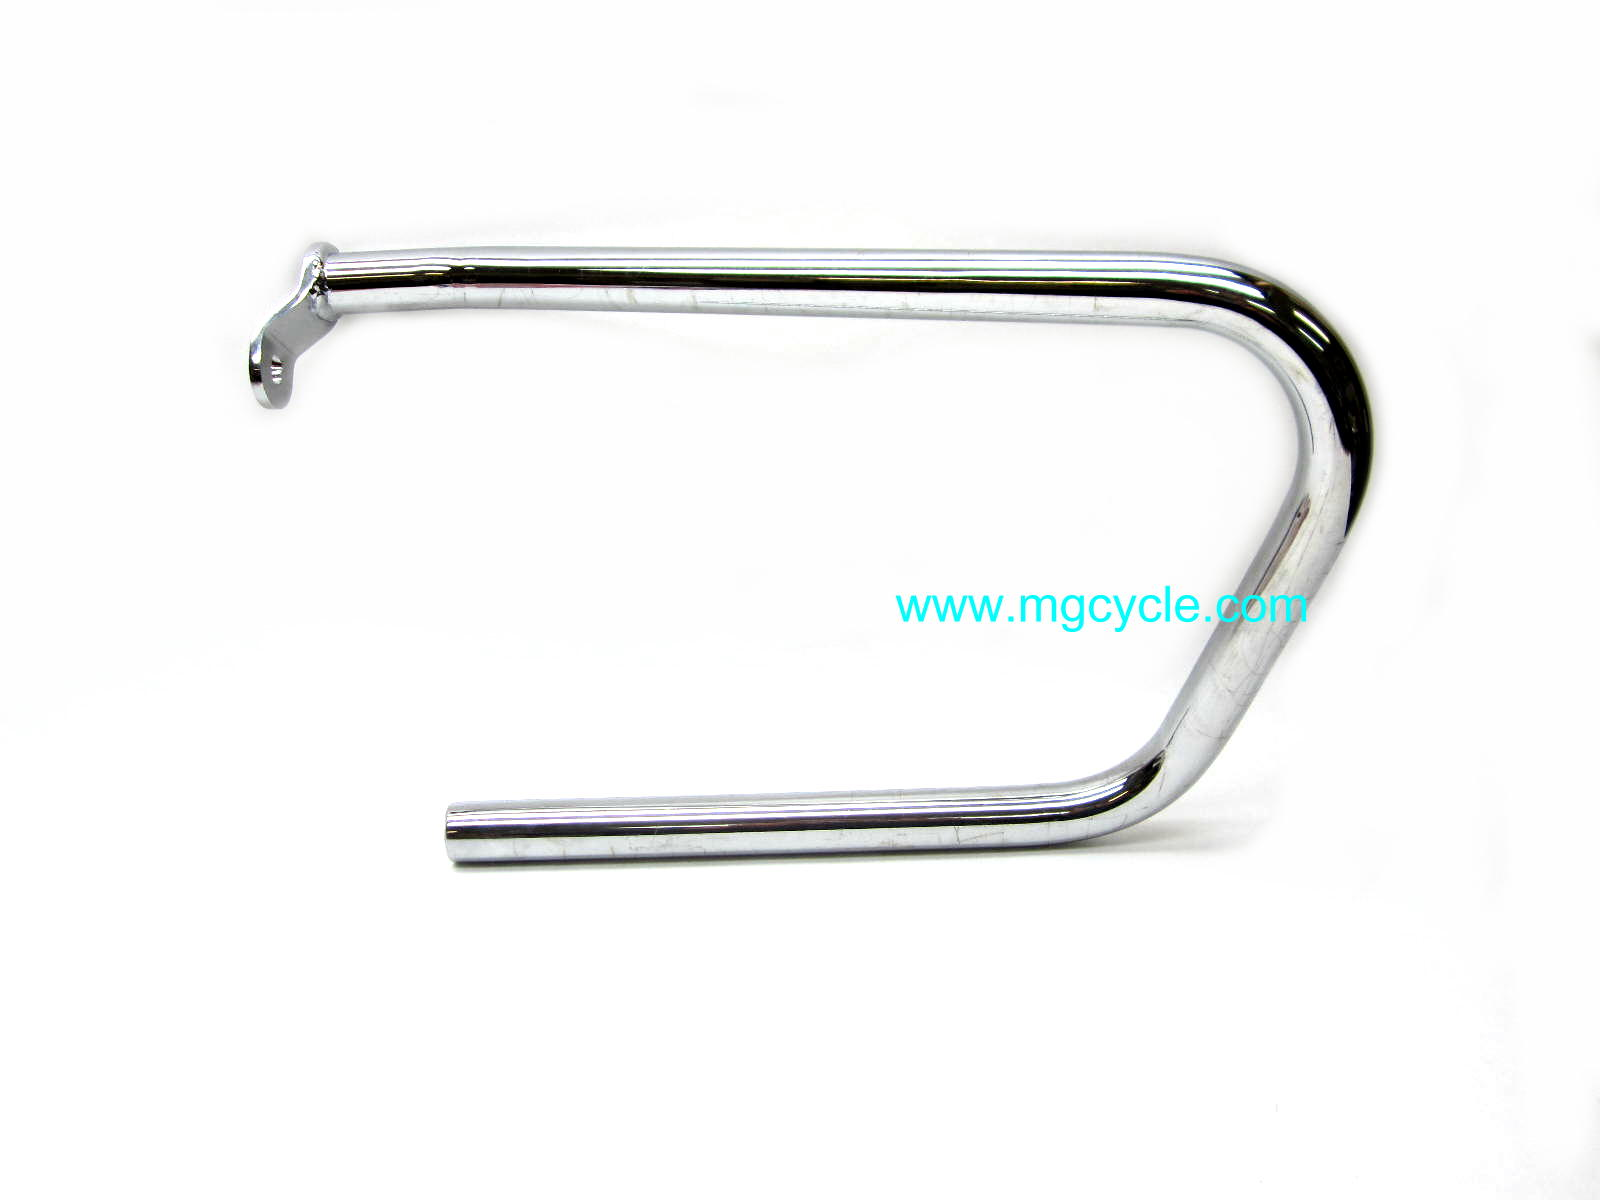 right side rear crash bar for 98-2001 V11 EV, for 40 lt HB bags